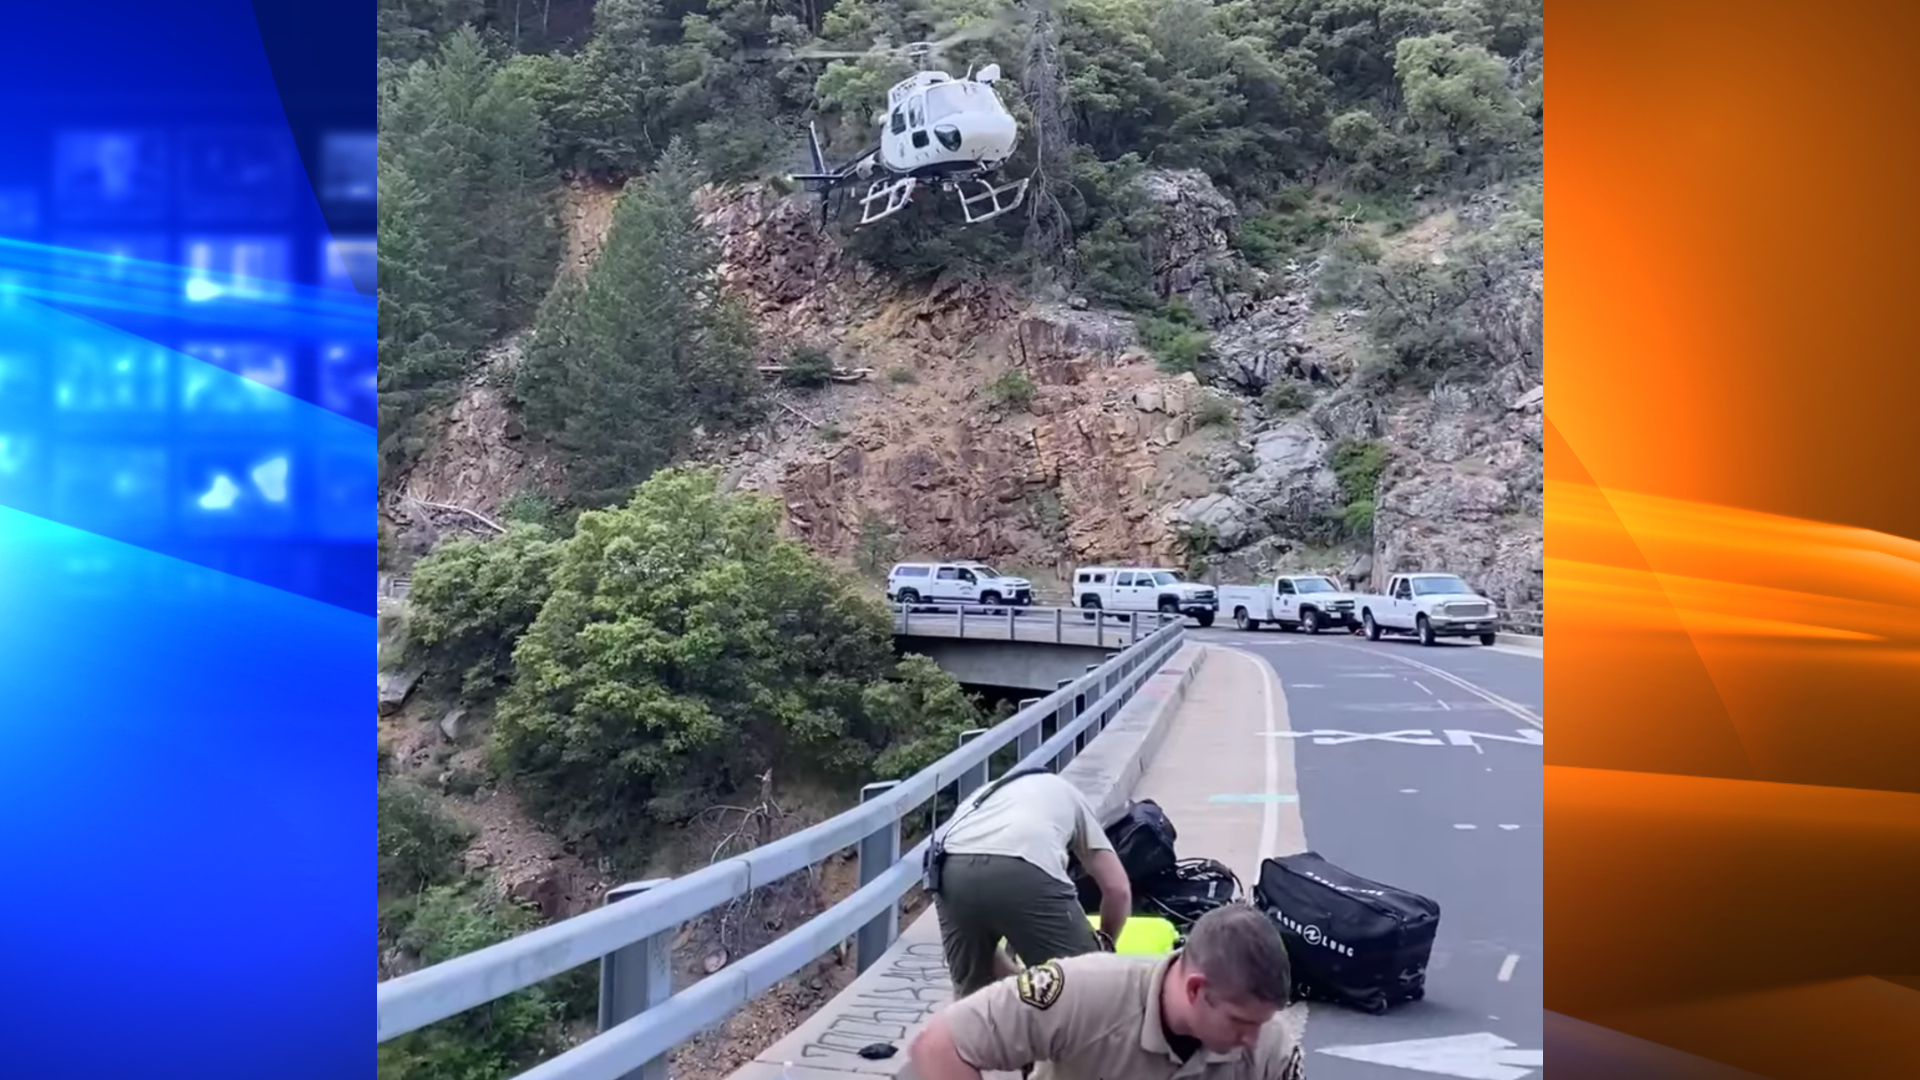 A rescue operation in the Sierra Nevada is seen in a screengrab from video released by the Tuolumne County Sheriff's Office on May 14, 2021.